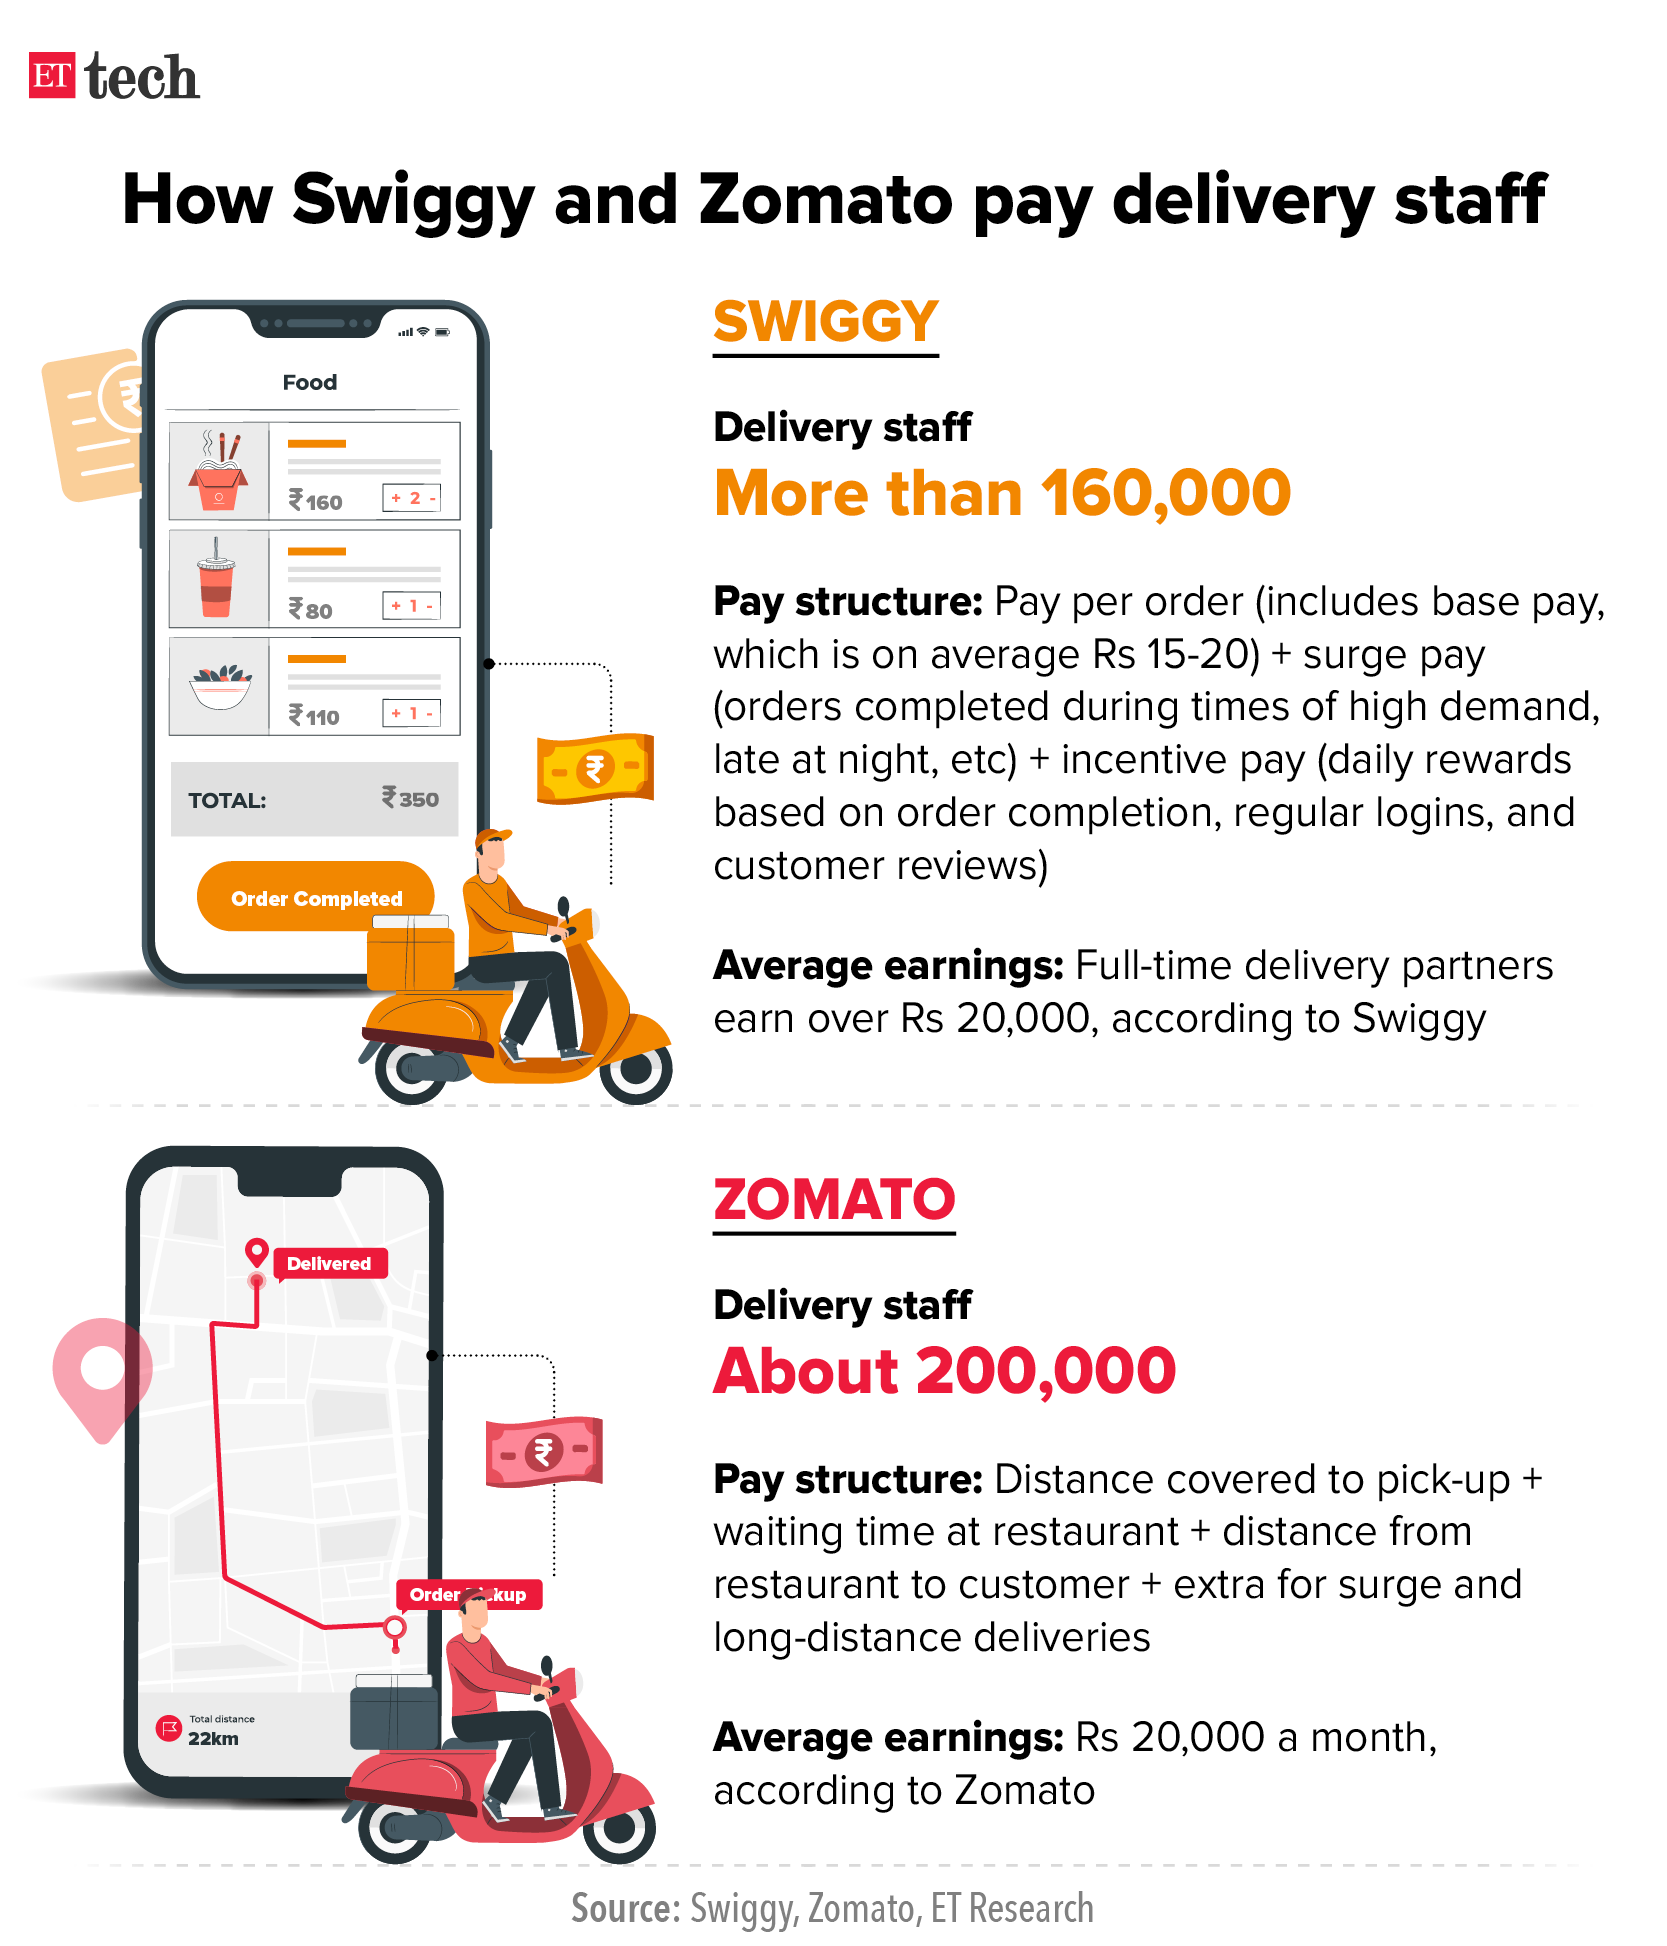 How Swiggy and Zomato pay